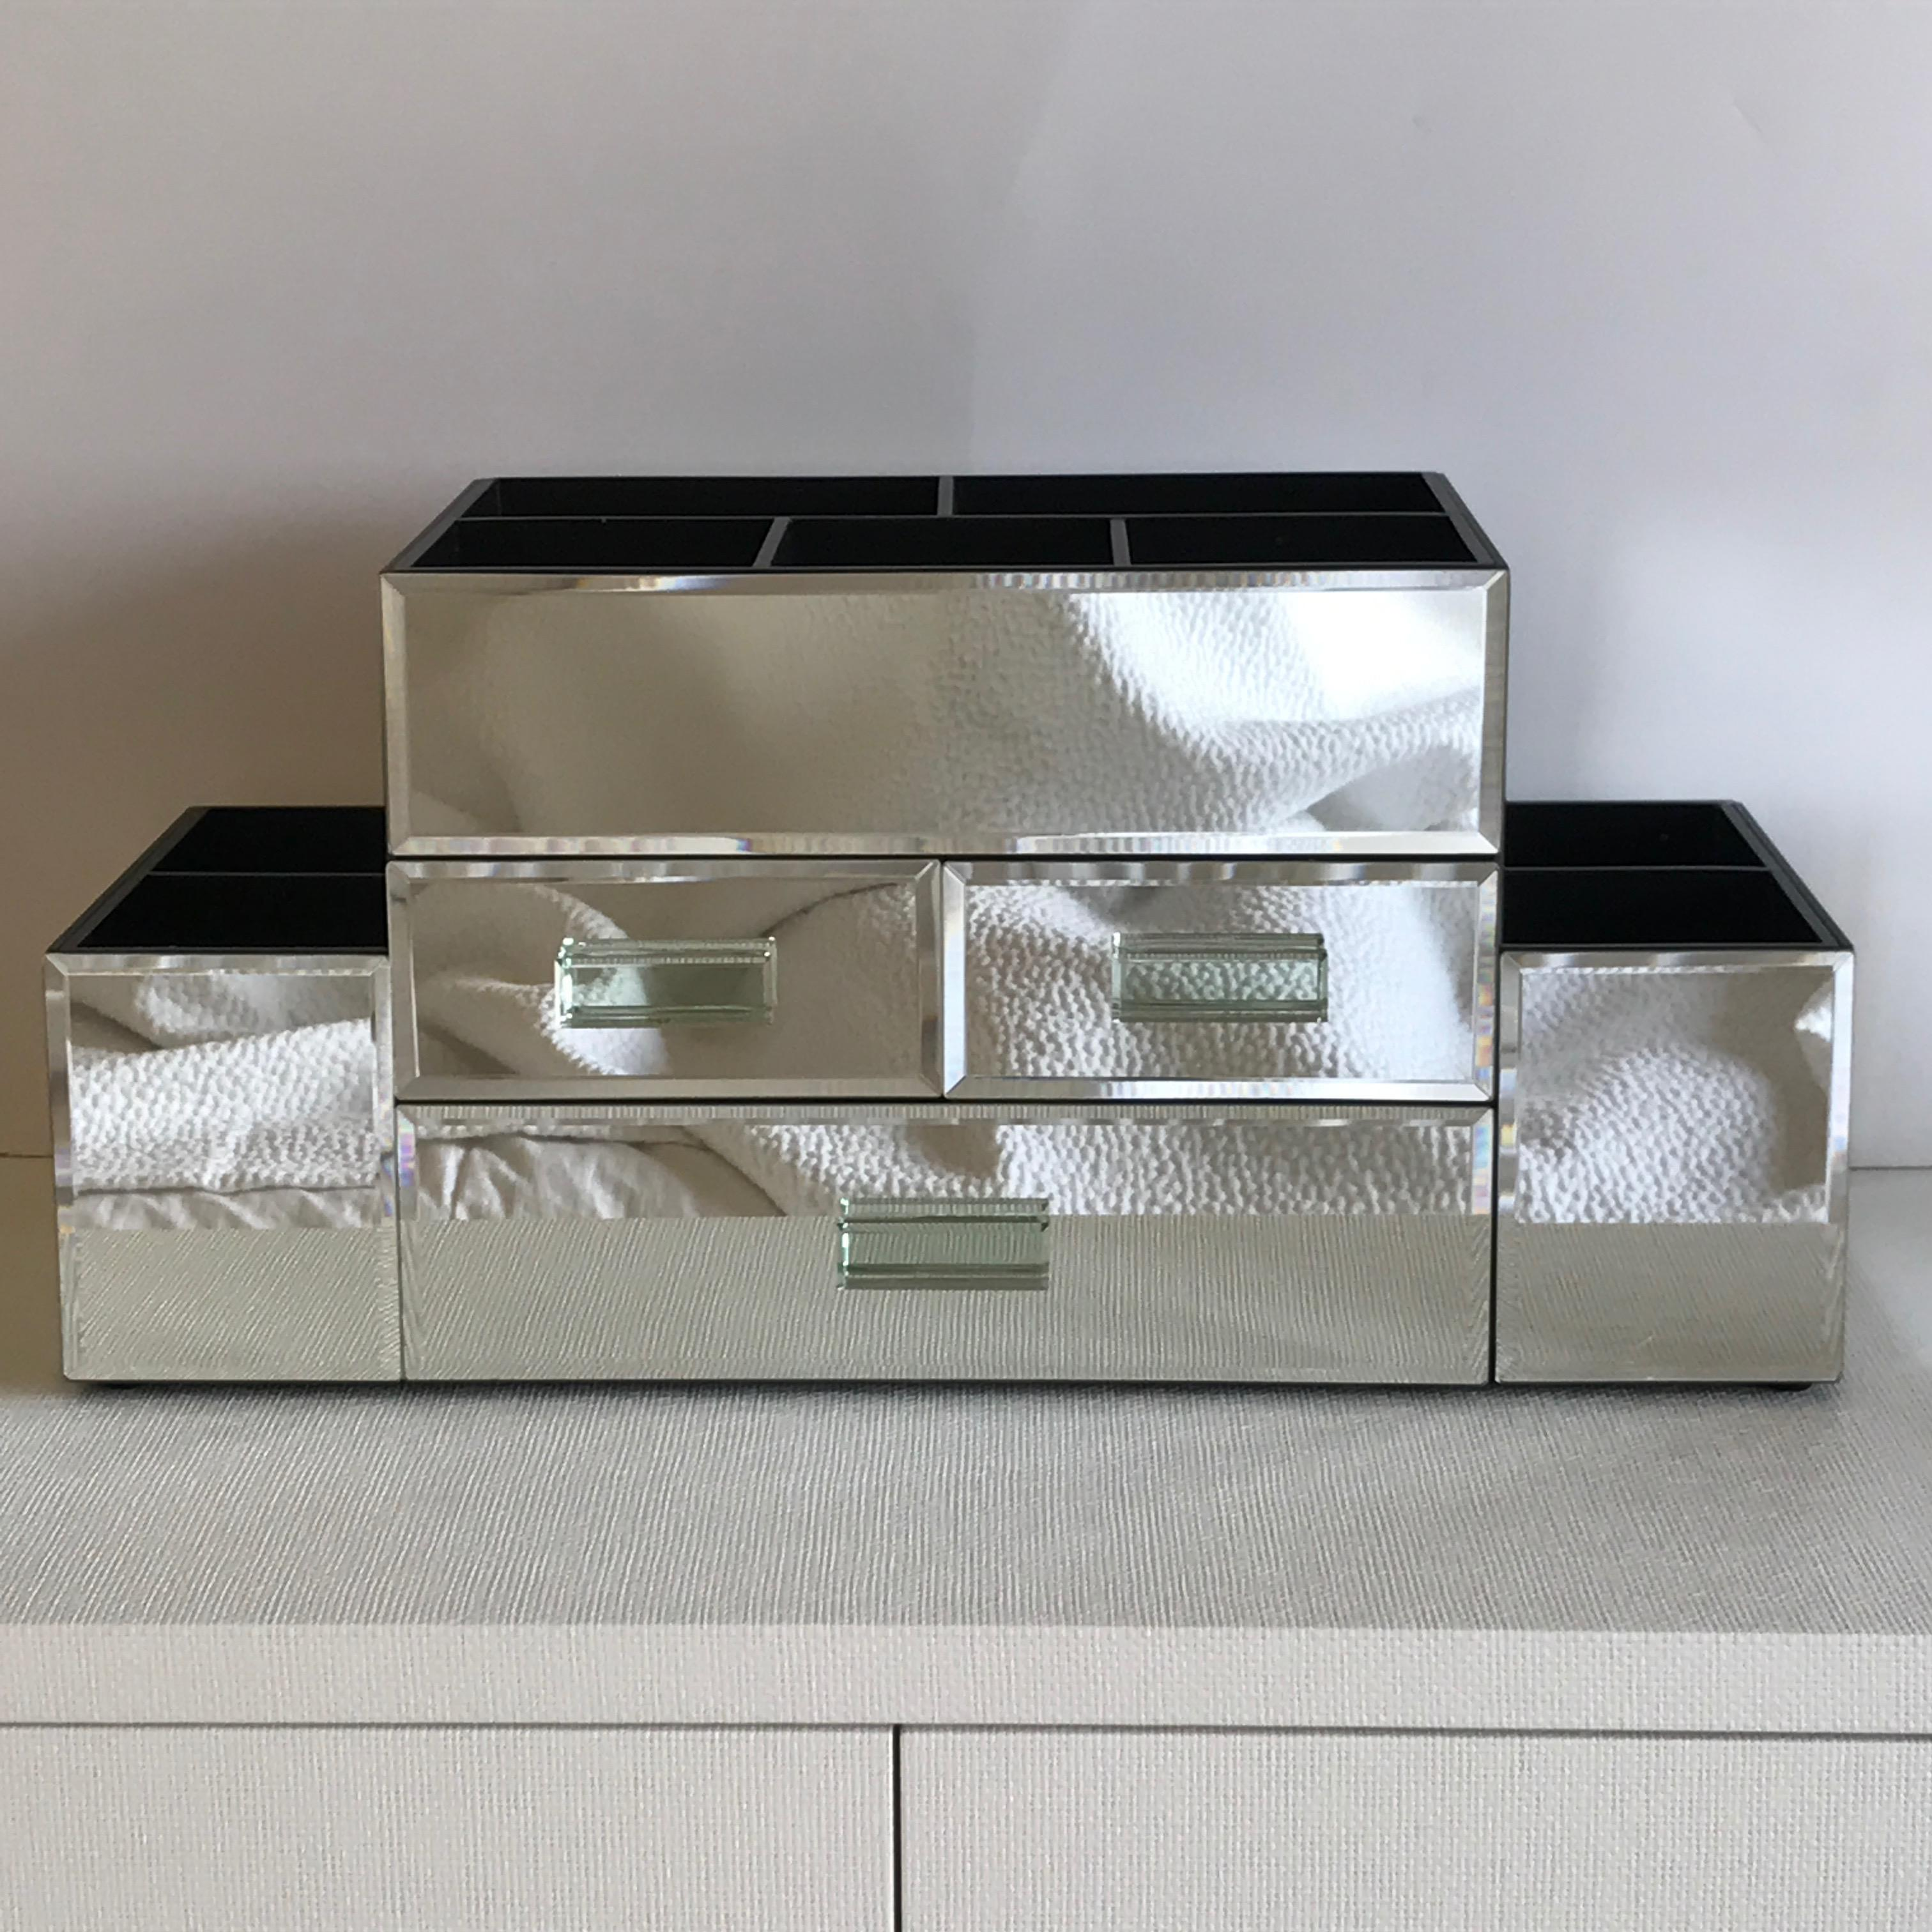 Pottery Barn Large Mirrored Makeup Organizer Box With Drawers (Brand New)    Image 2